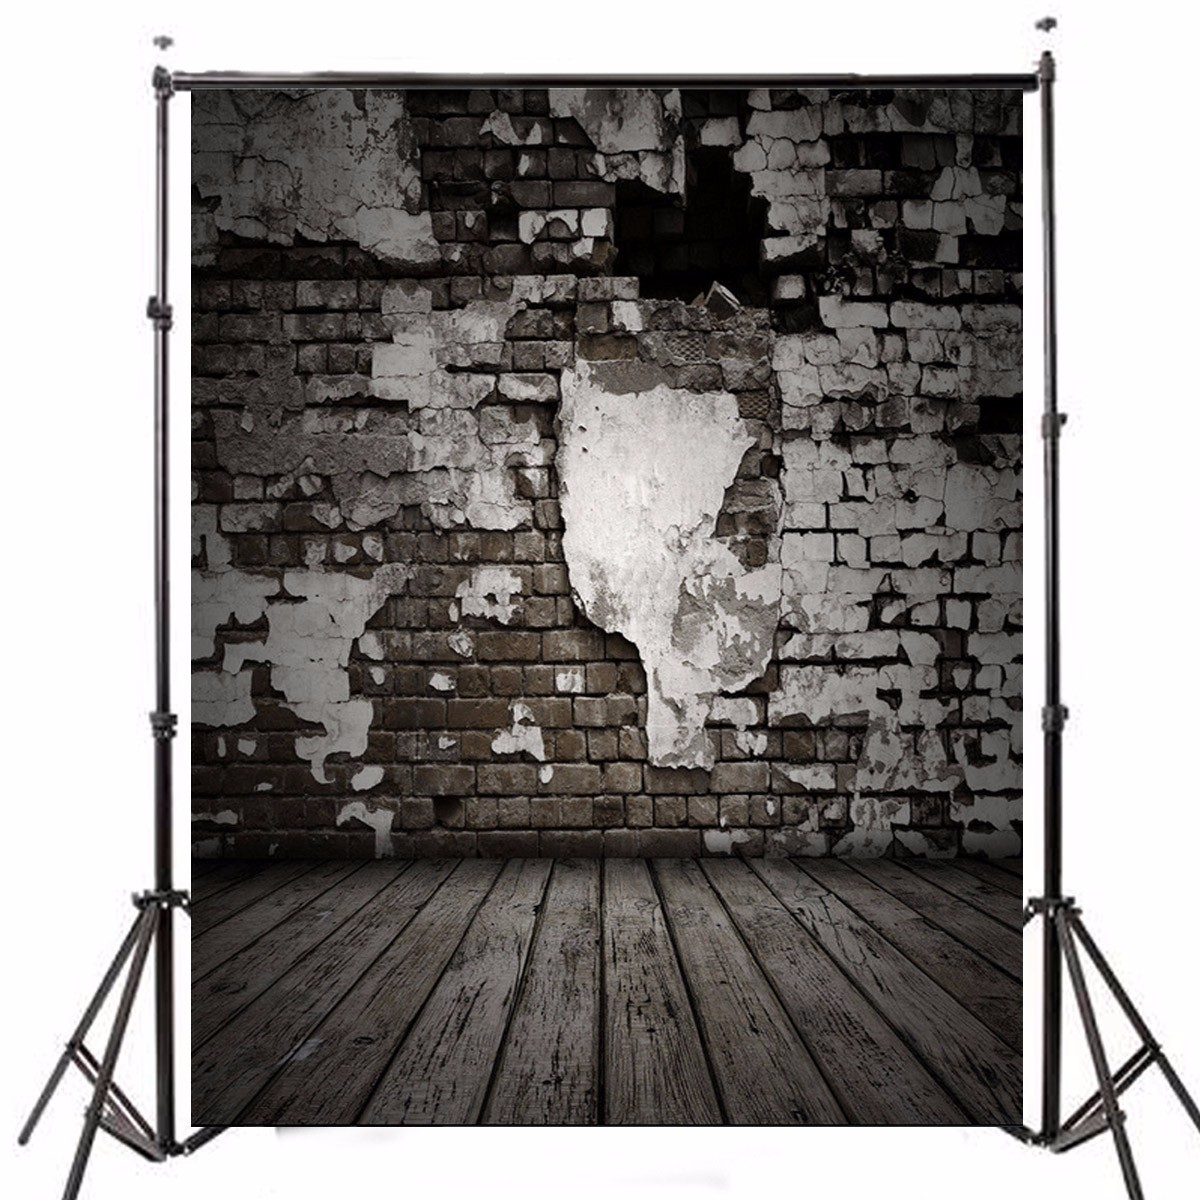 Other Gadgets 5x7ft Wooden Brick Theme Photography